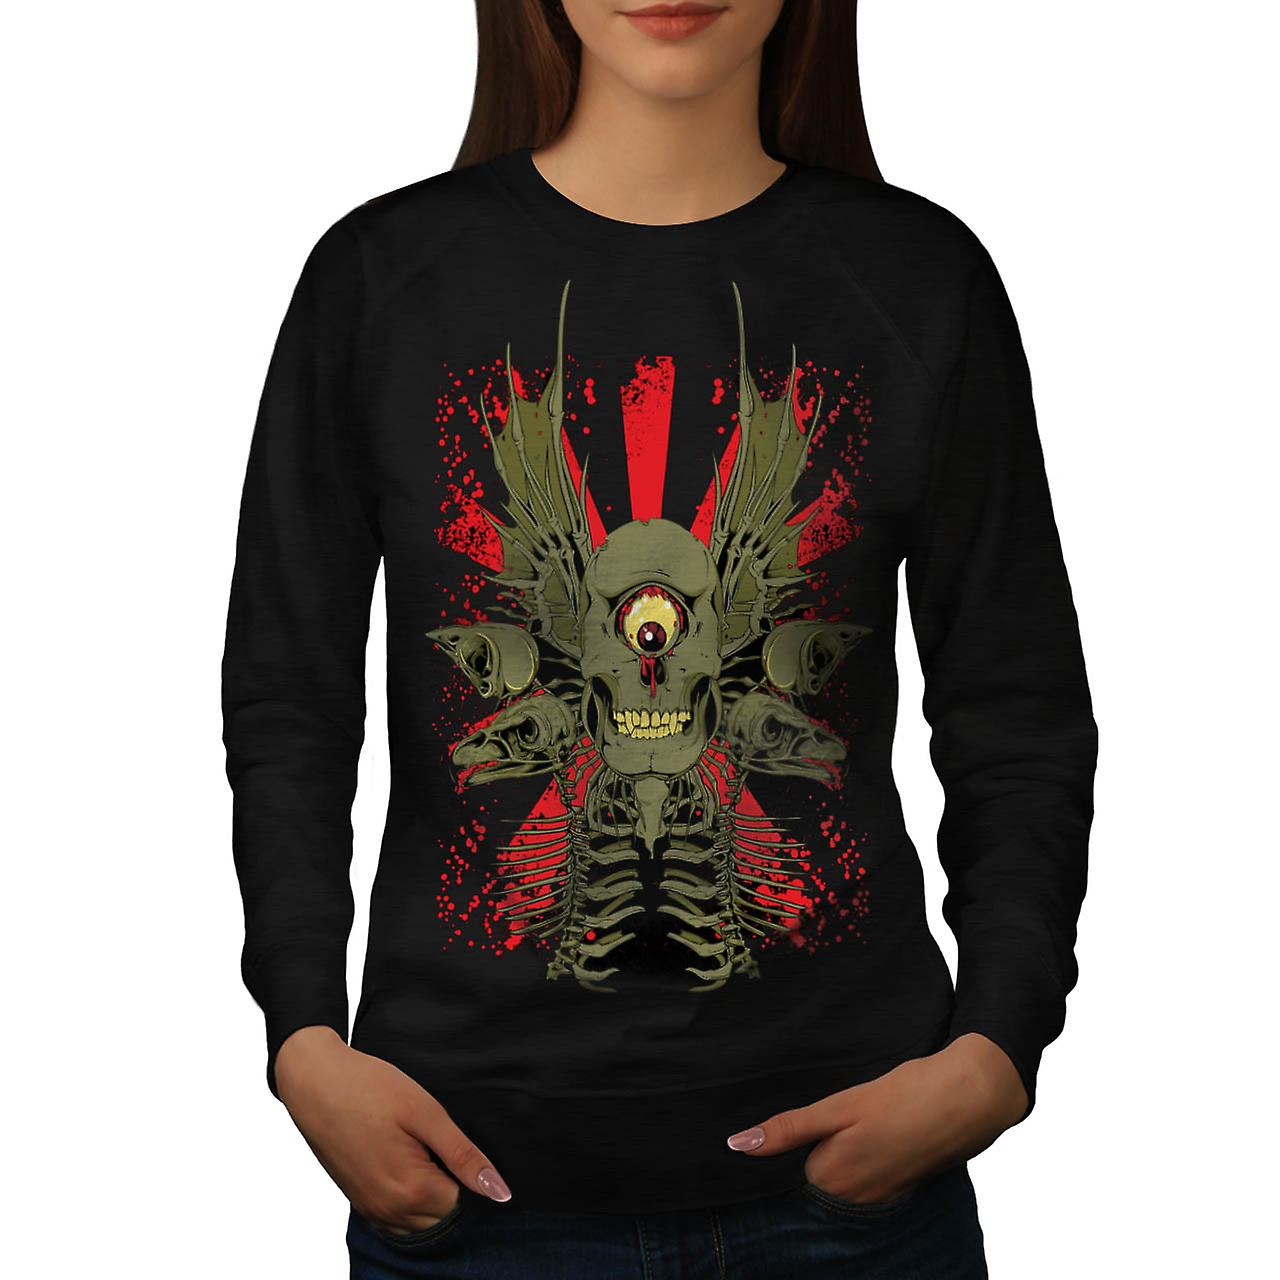 Zombie-Monster-Horror-Frauen Schwarzes Sweatshirt | Wellcoda